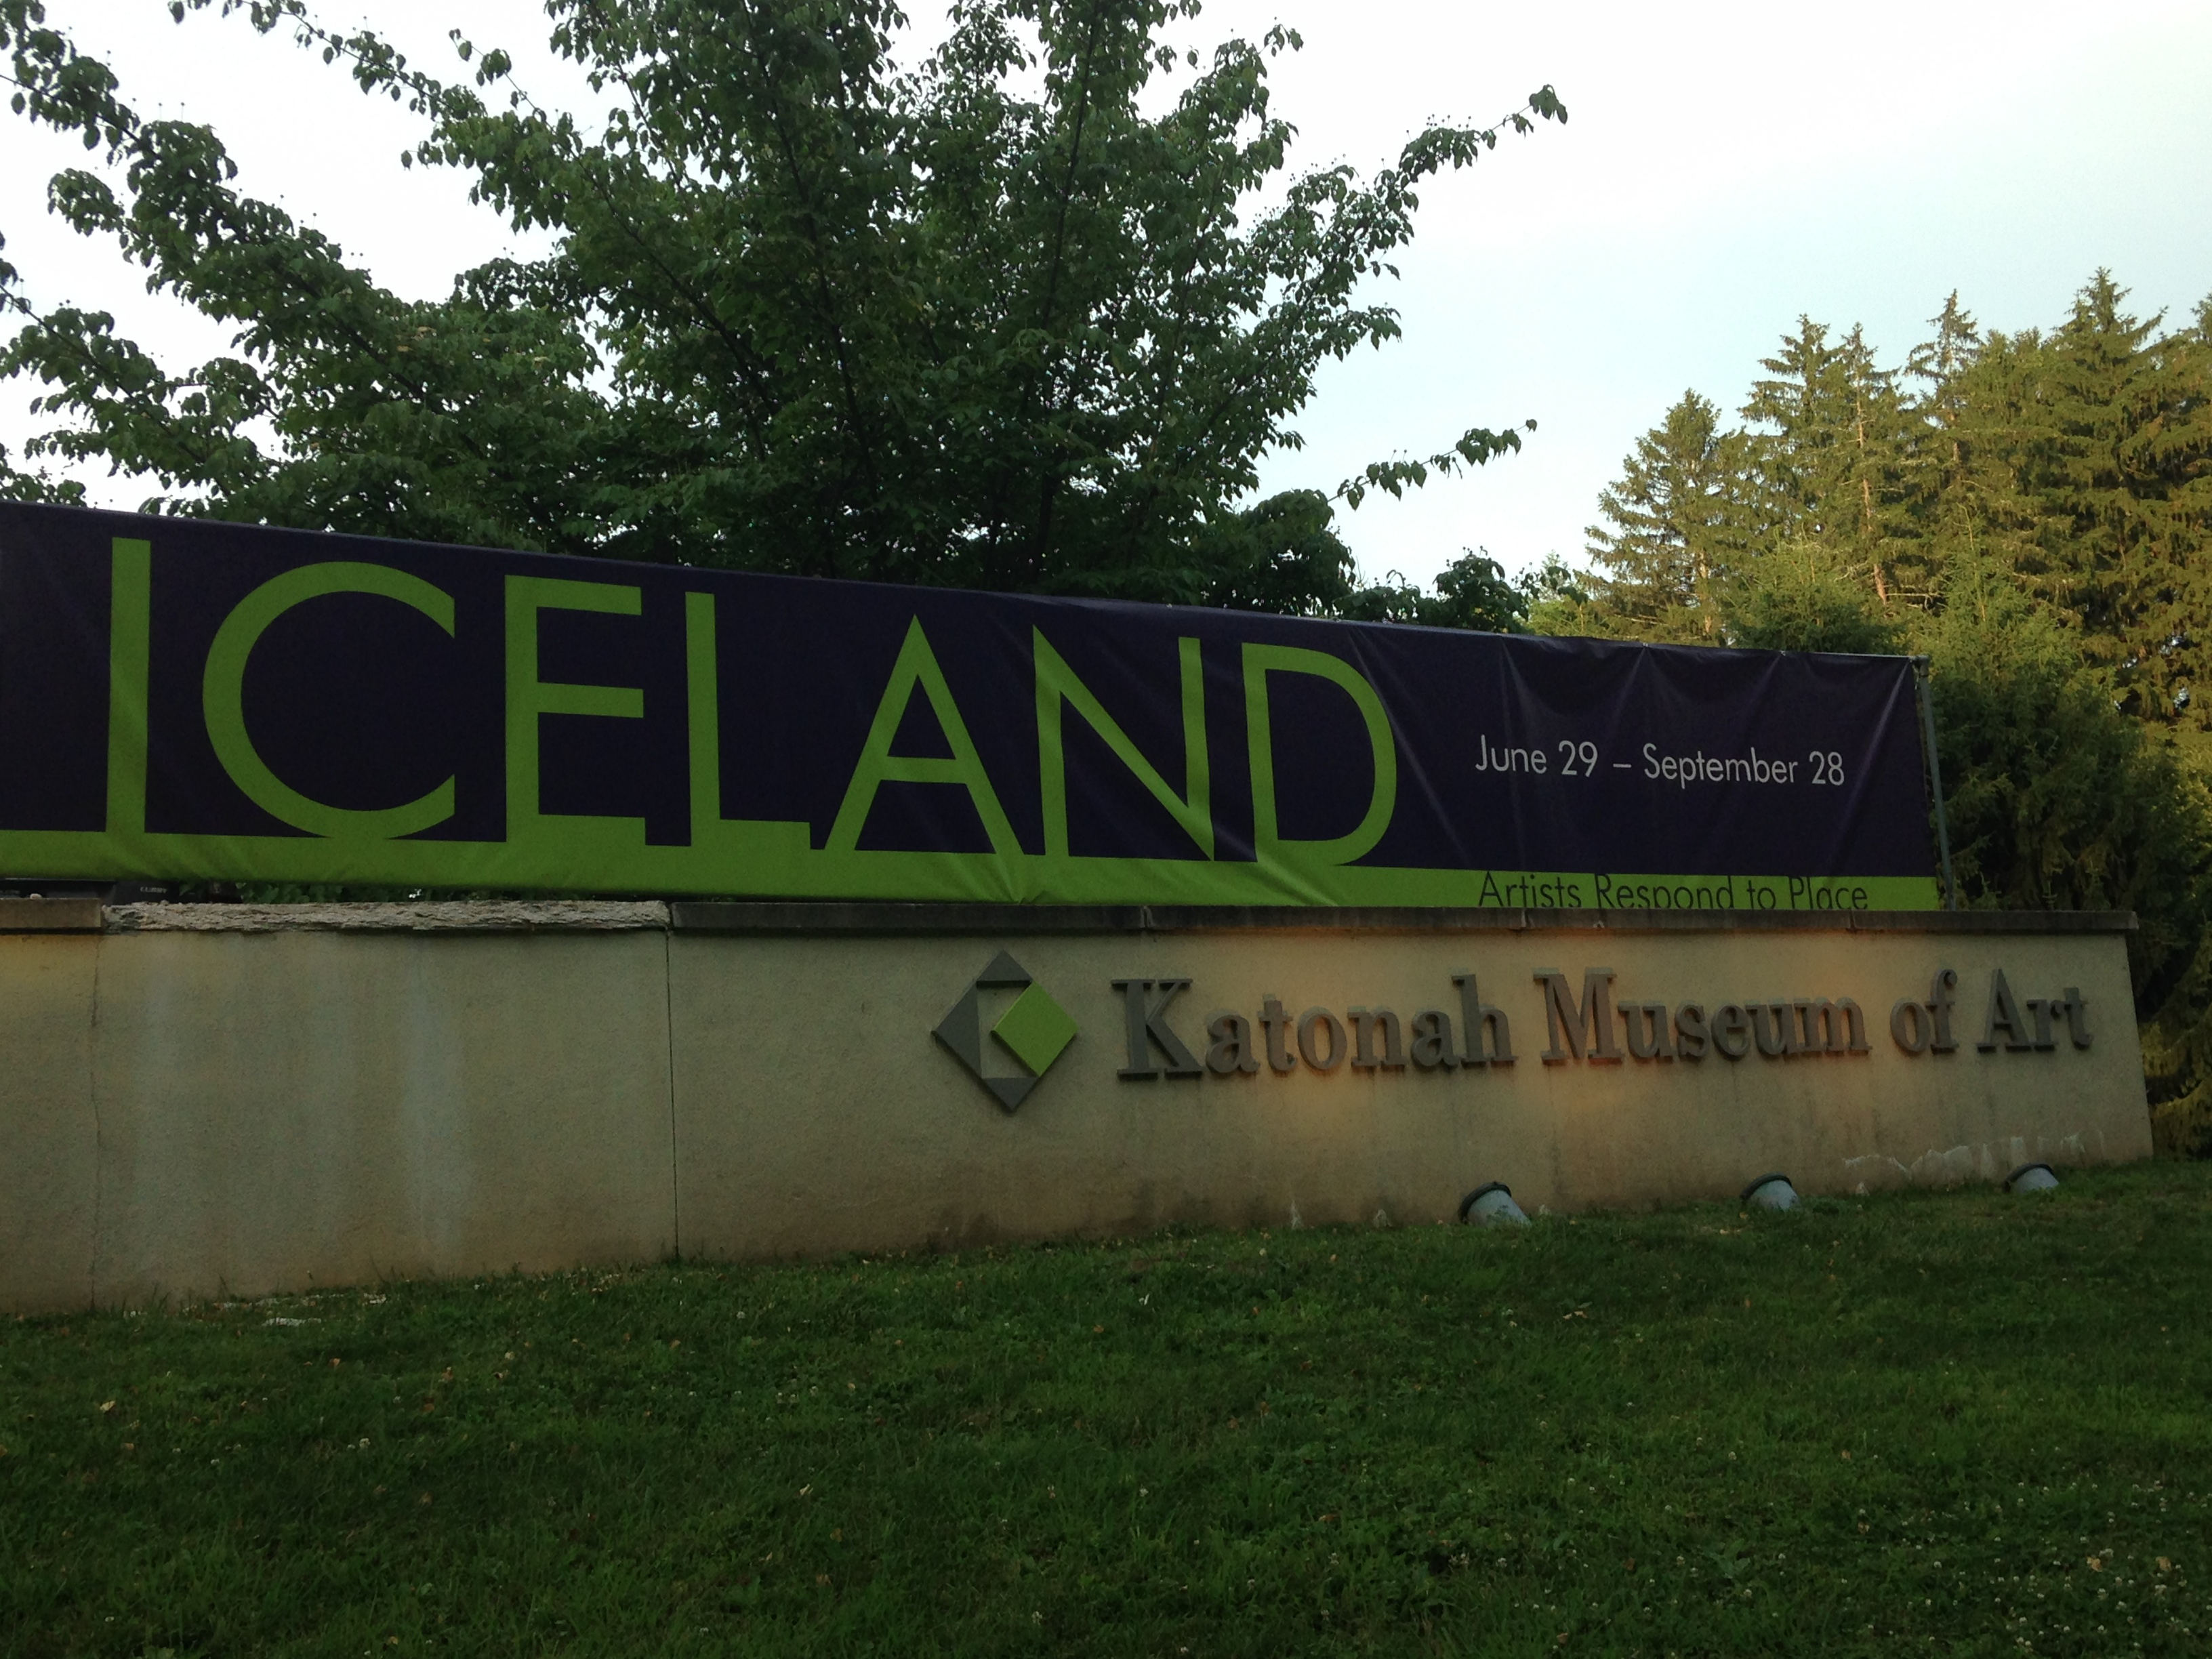 Katonah-Museum-of-Art-Iceland-sign.jpg